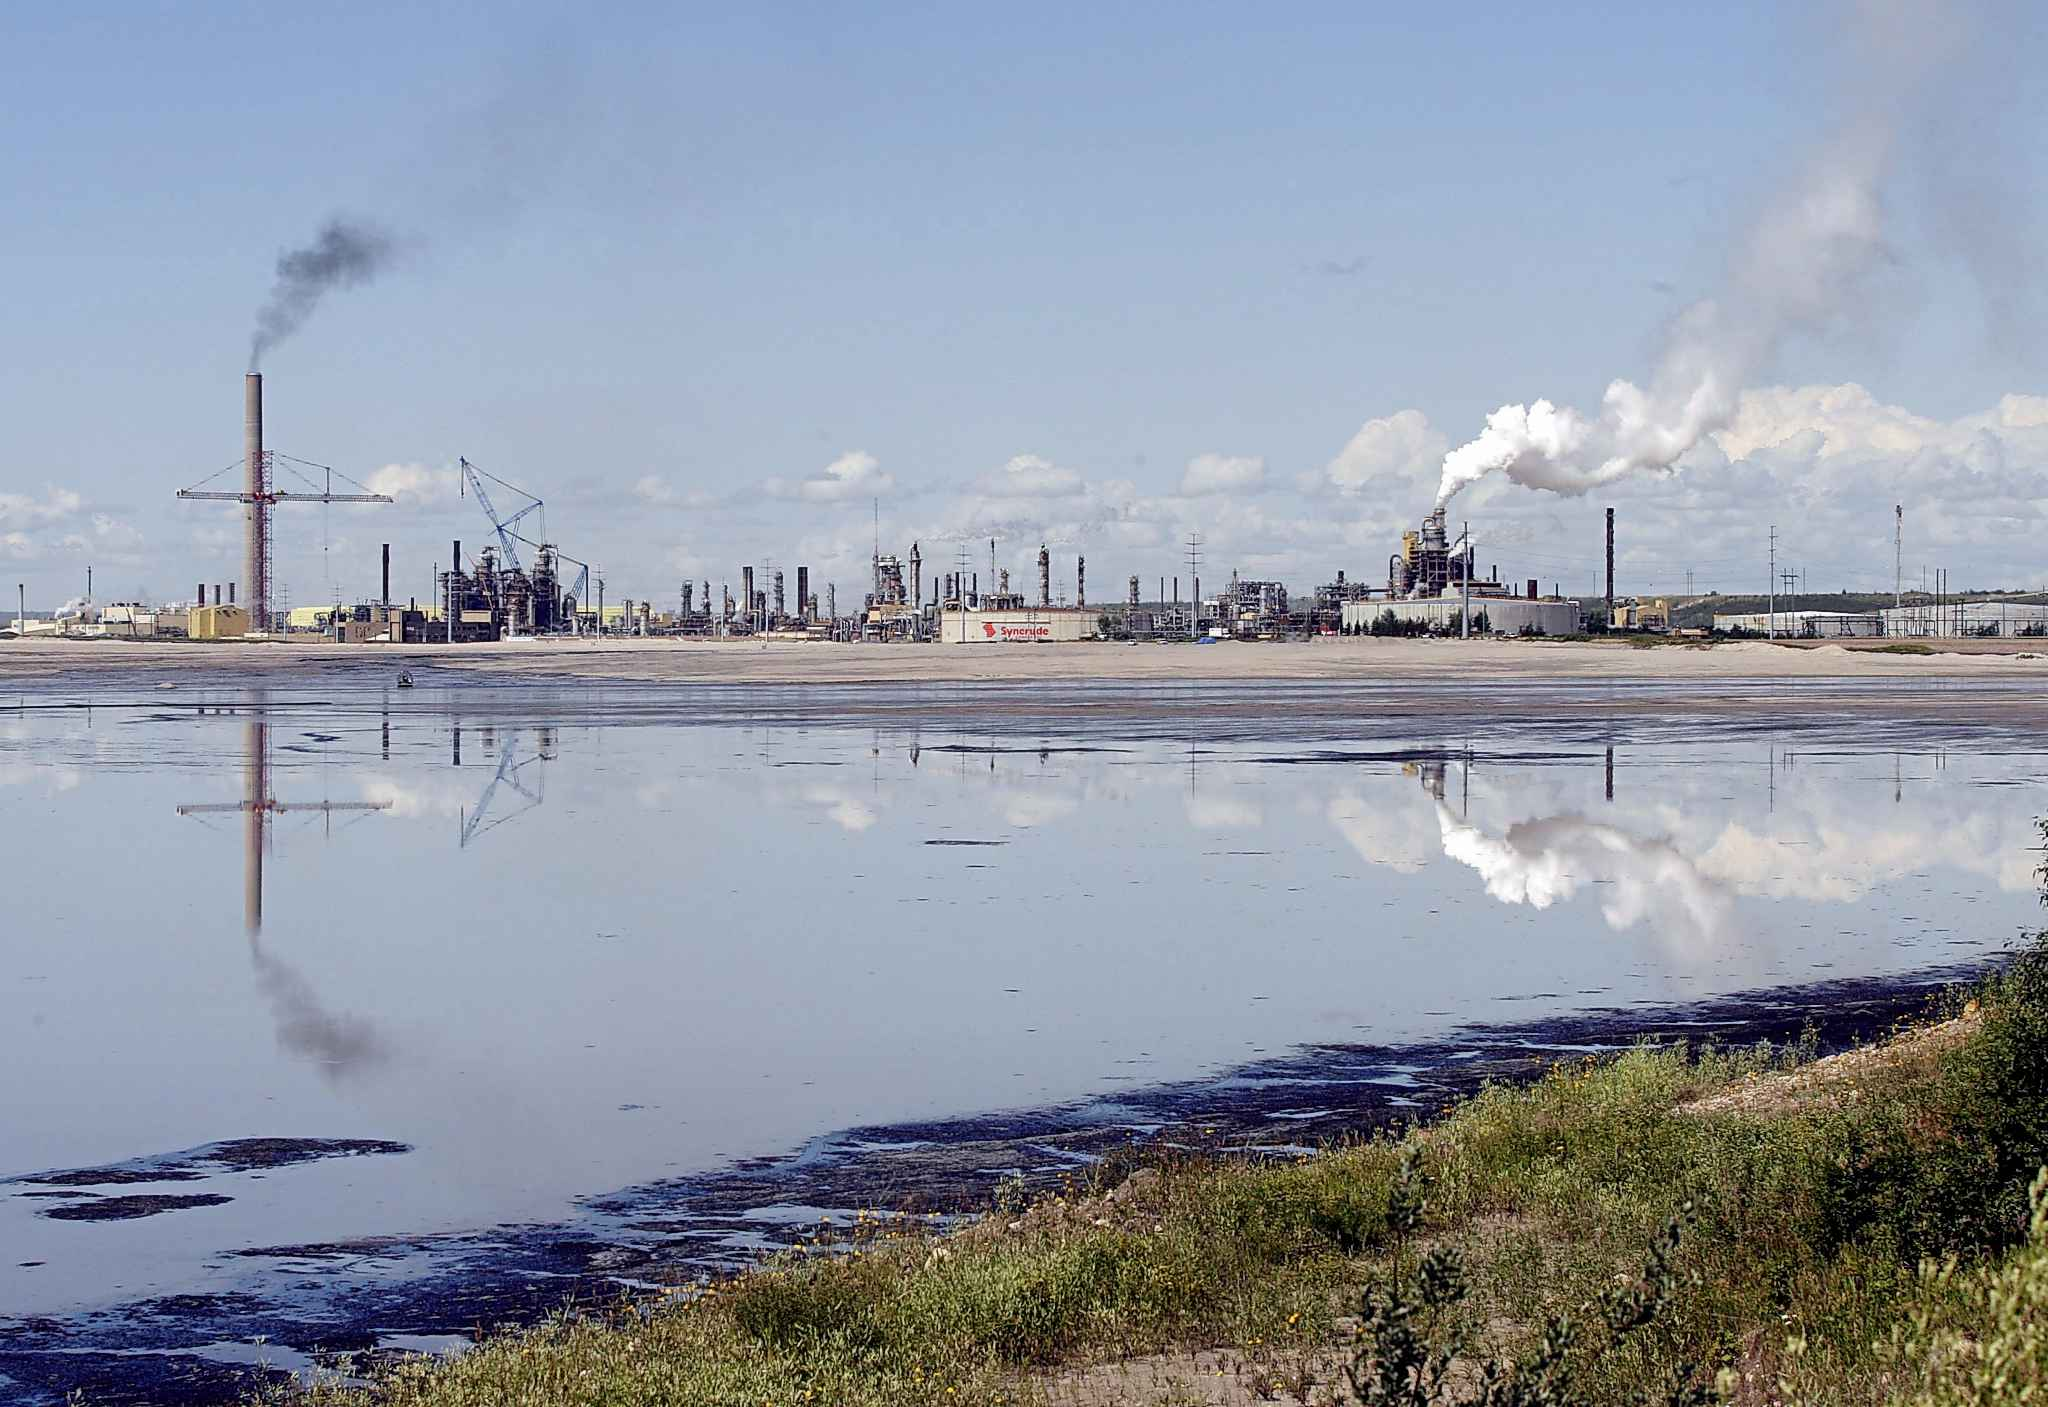 The $20.6-billion Frontier oilsands project would have created 7,000 construction jobs, 2,500 operating jobs and would have meant roughly $12 billion in federal income and capital taxes. Above: the Syncrude oilsands mine facility near Fort McMurray, Alta. (Jeff McIntosh / The Associated Press files)